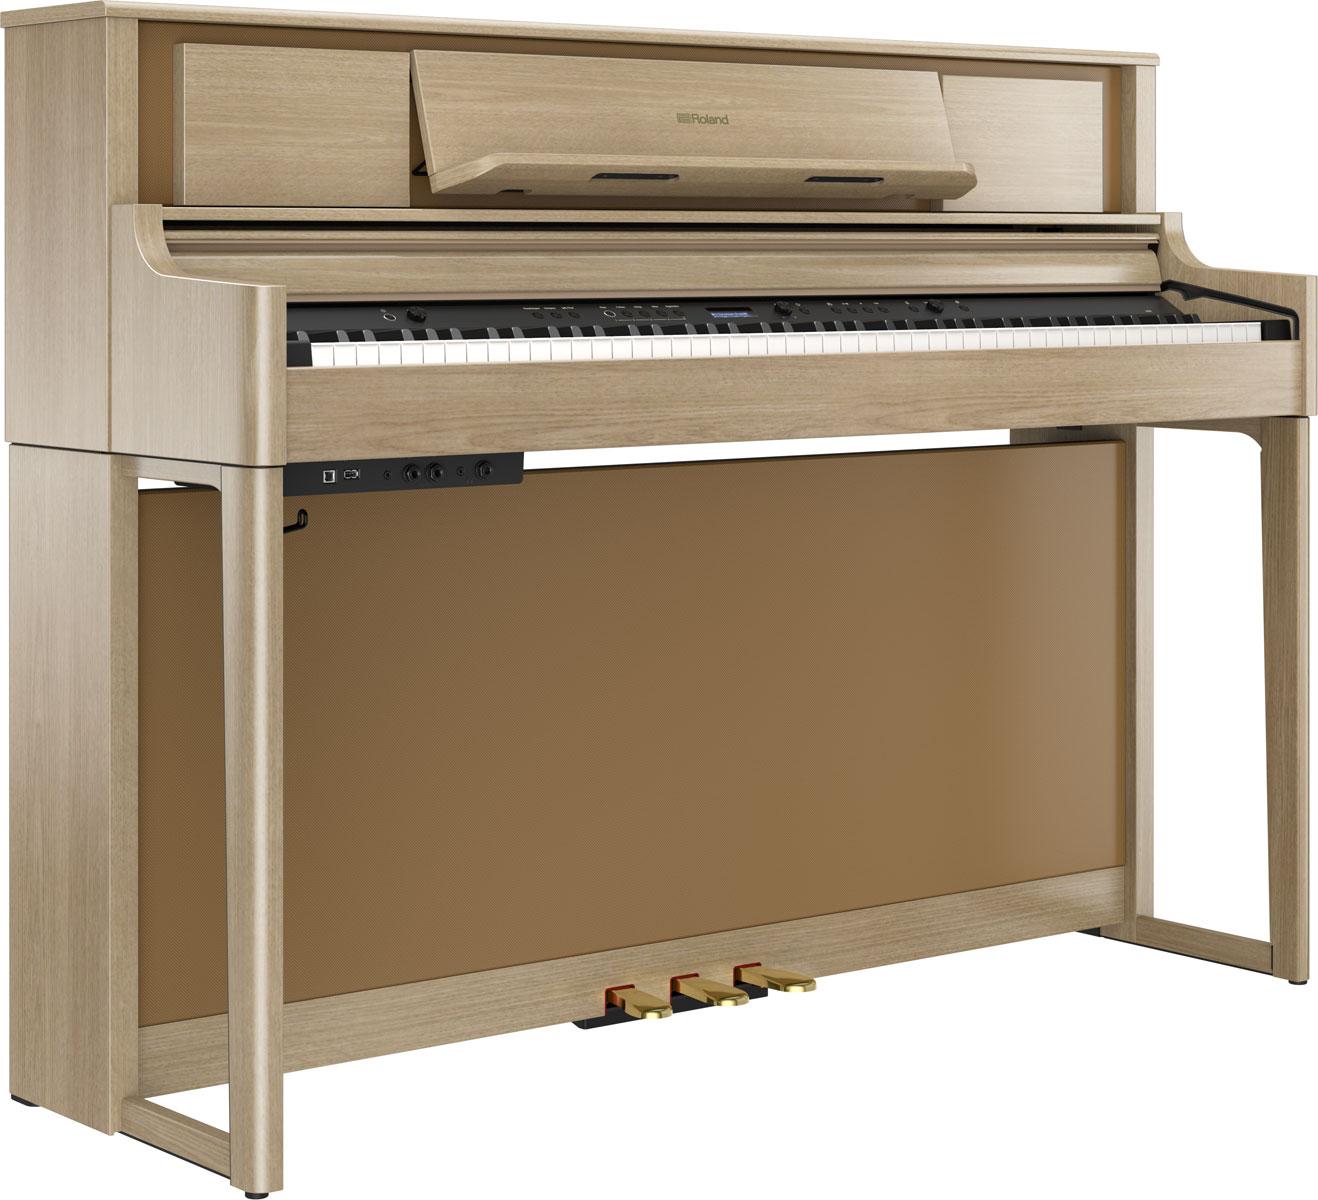 https://static.roland.com/products/lx700_series/specifications/images/gallery_lx705_angle_light_oak.jpg